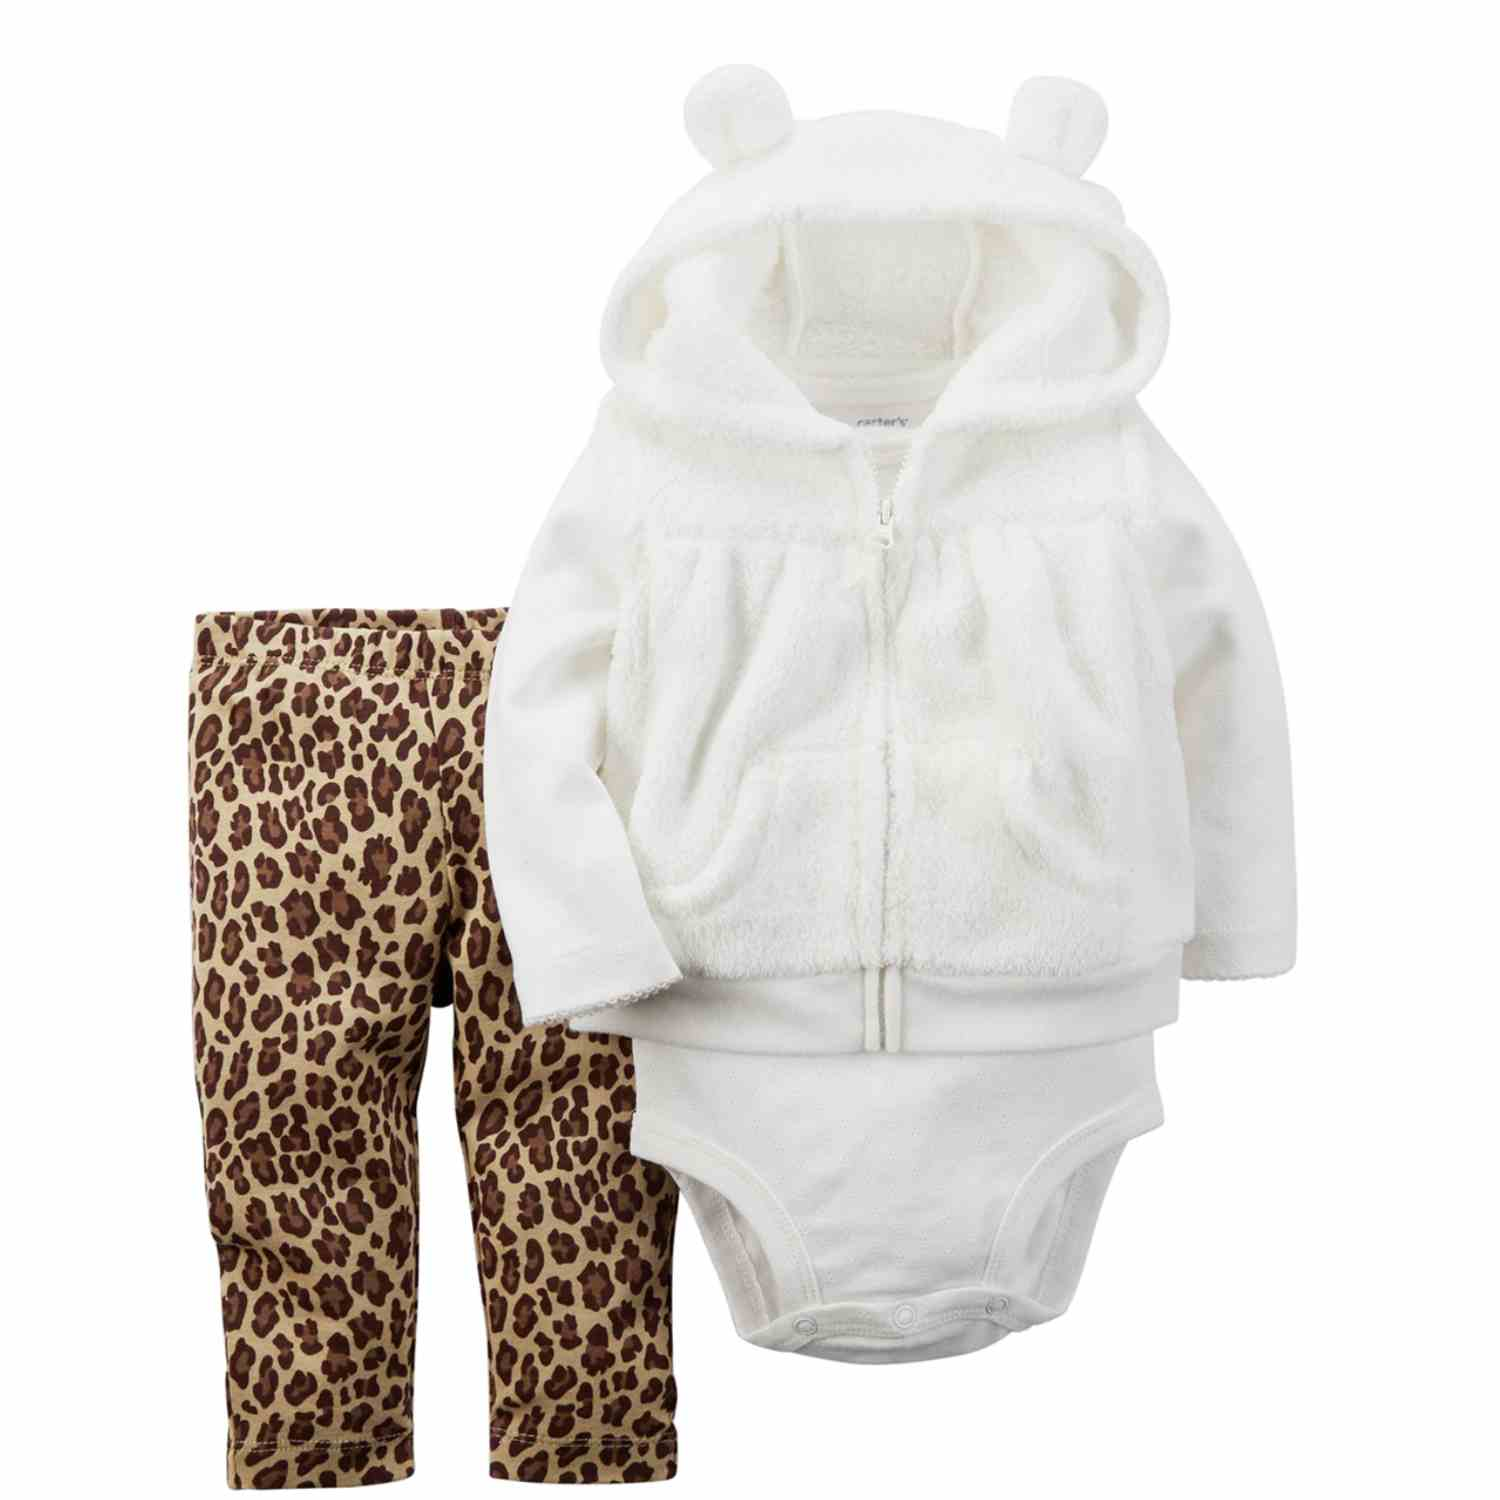 Carters Infant Girls 3 Piece Set Plush White Vest Leopard Leggings & Bodysuit